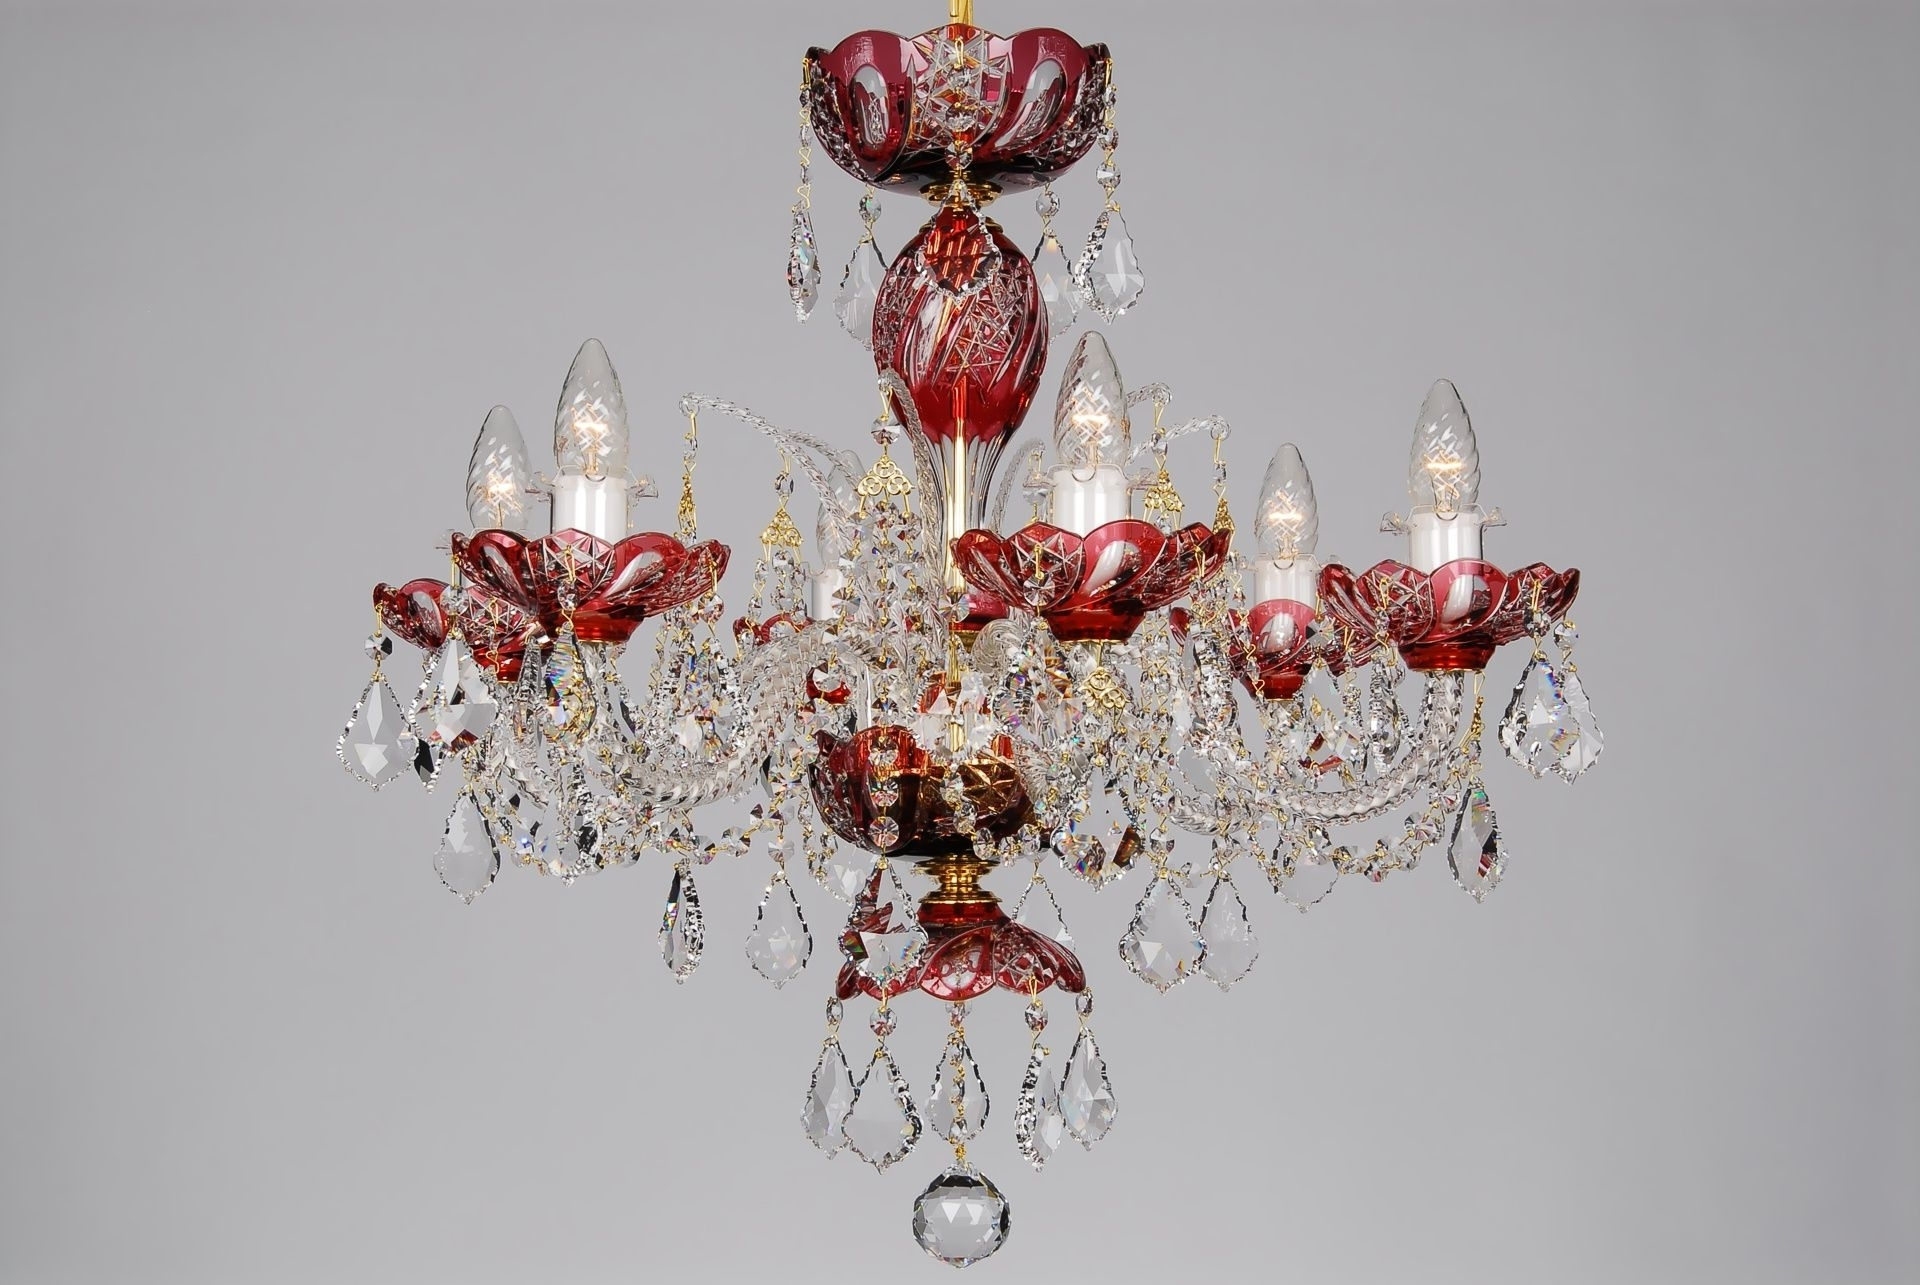 Small Red Chandelier With Current A Small Red Crystal Chandelier Decorated With Swarovski Trimmings (View 13 of 15)